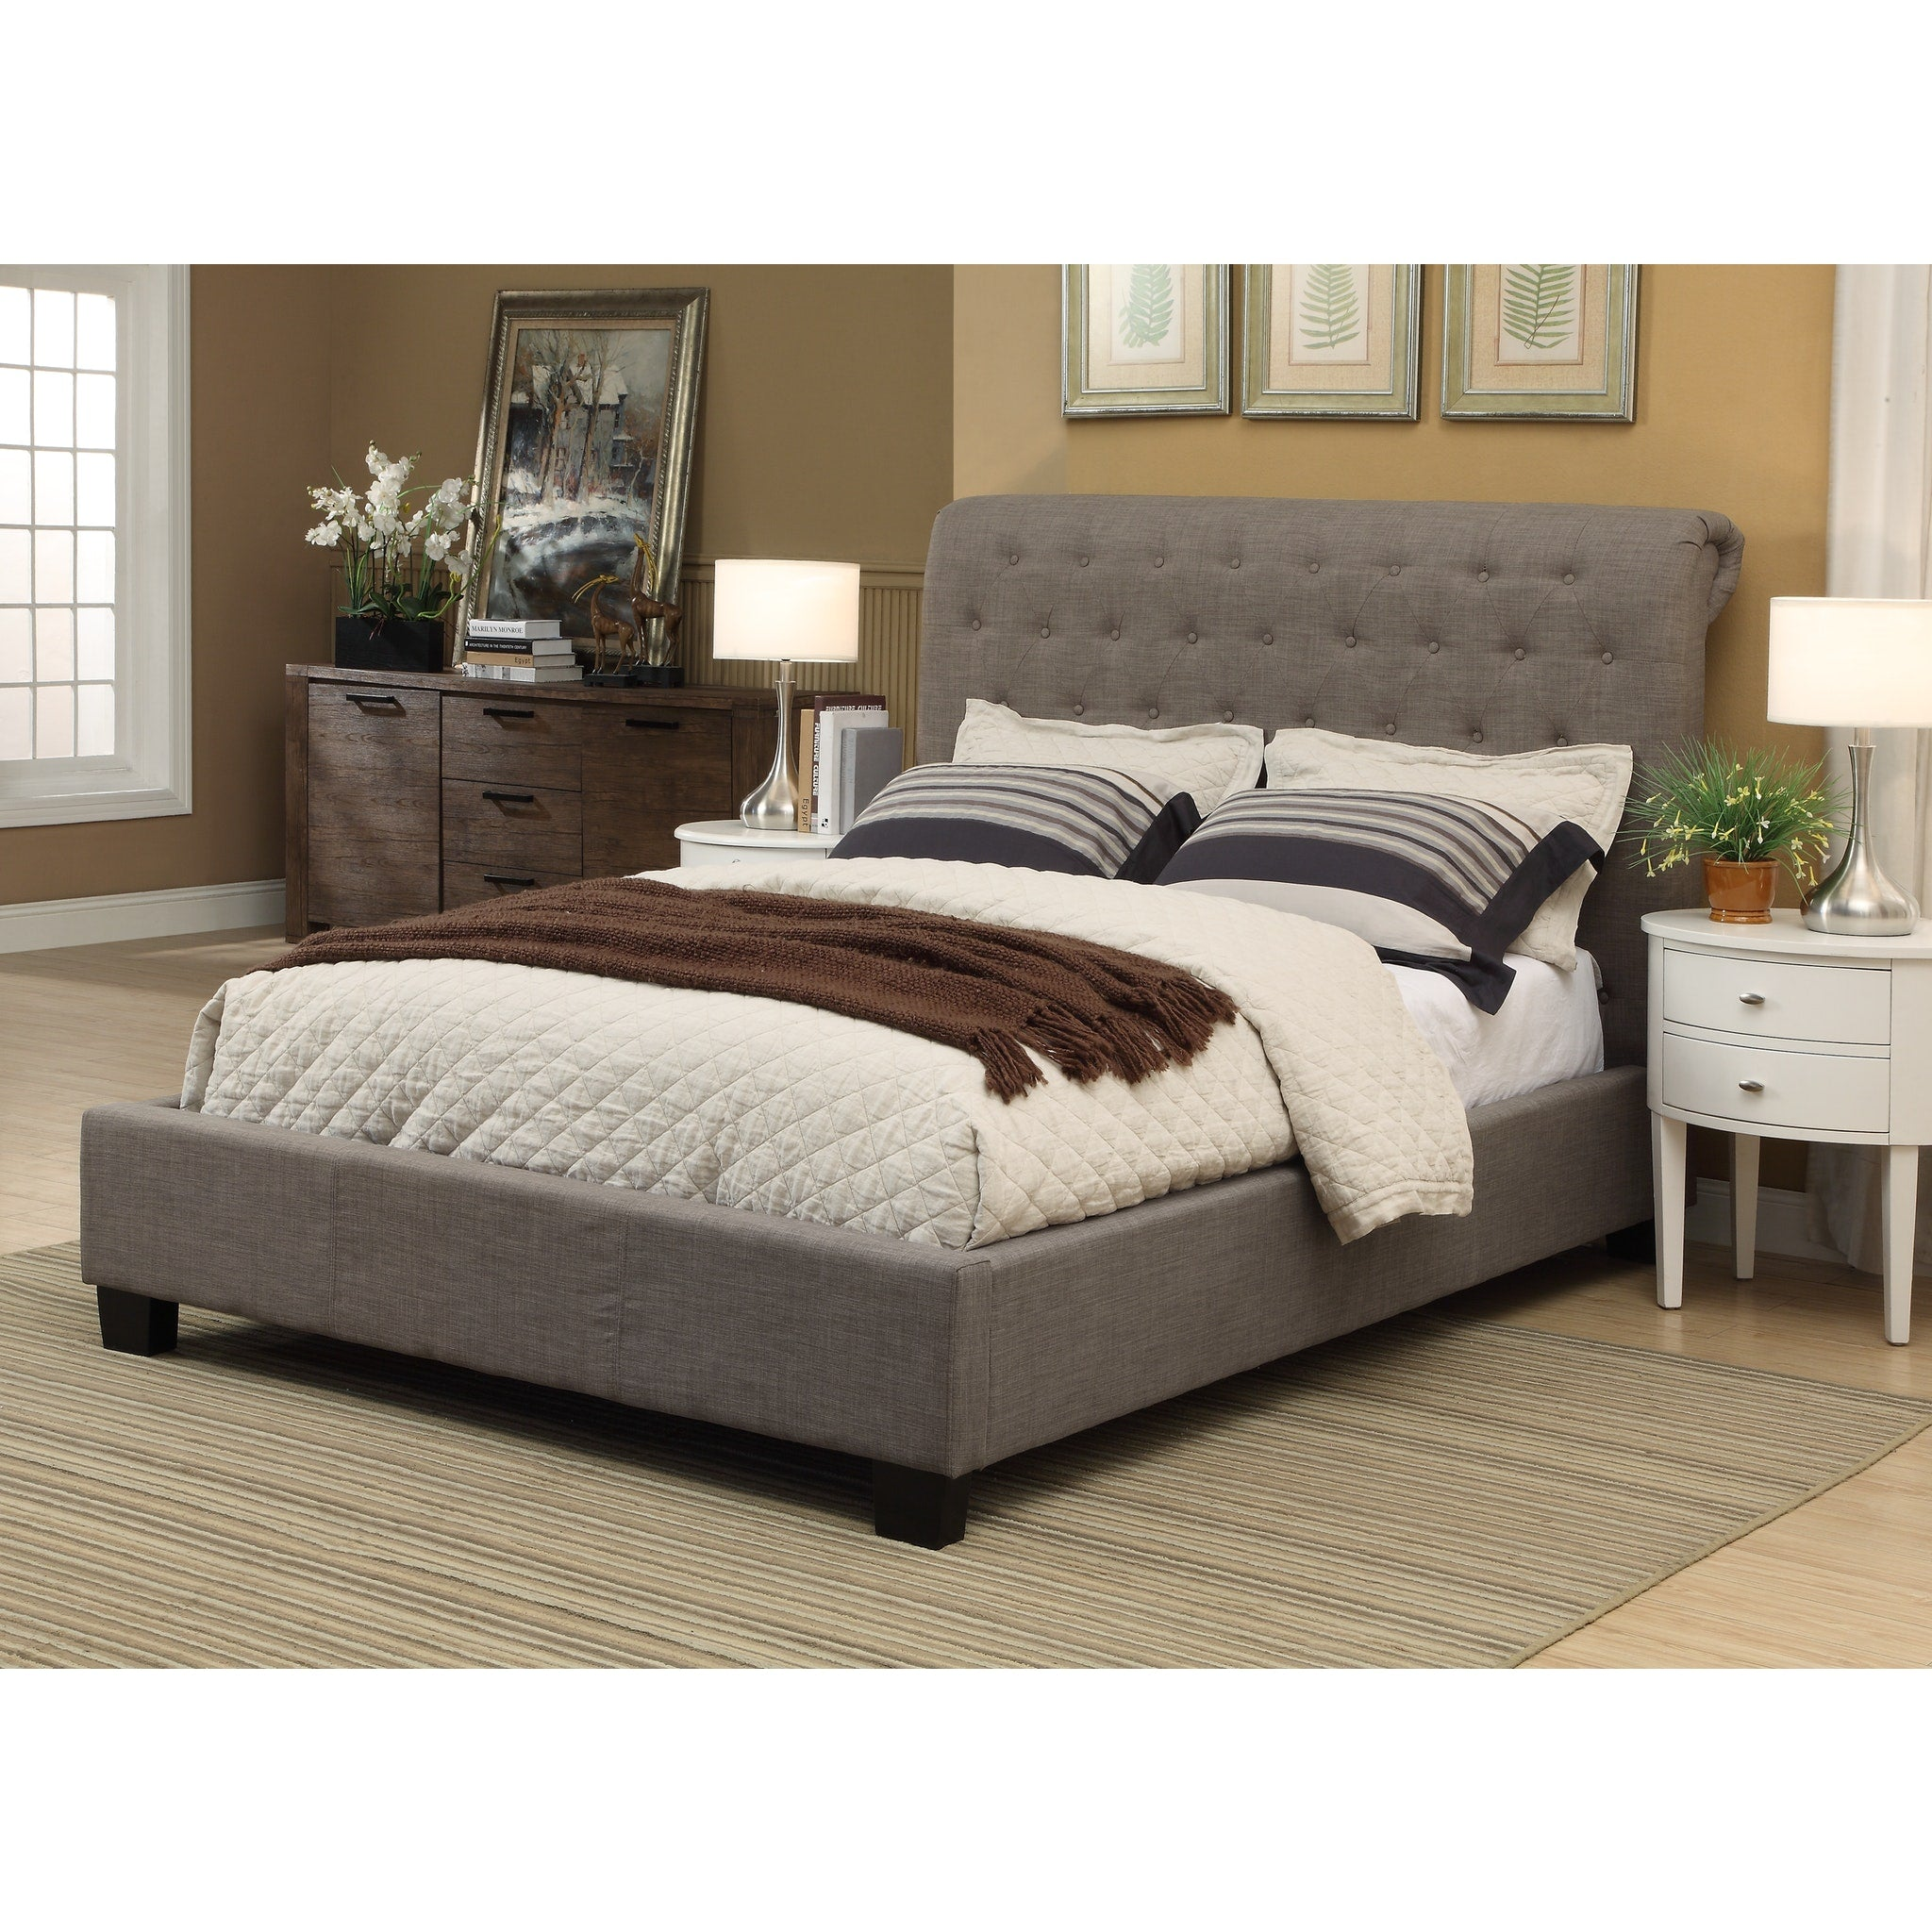 Royal Full-size Tufted Platform Storage Bed